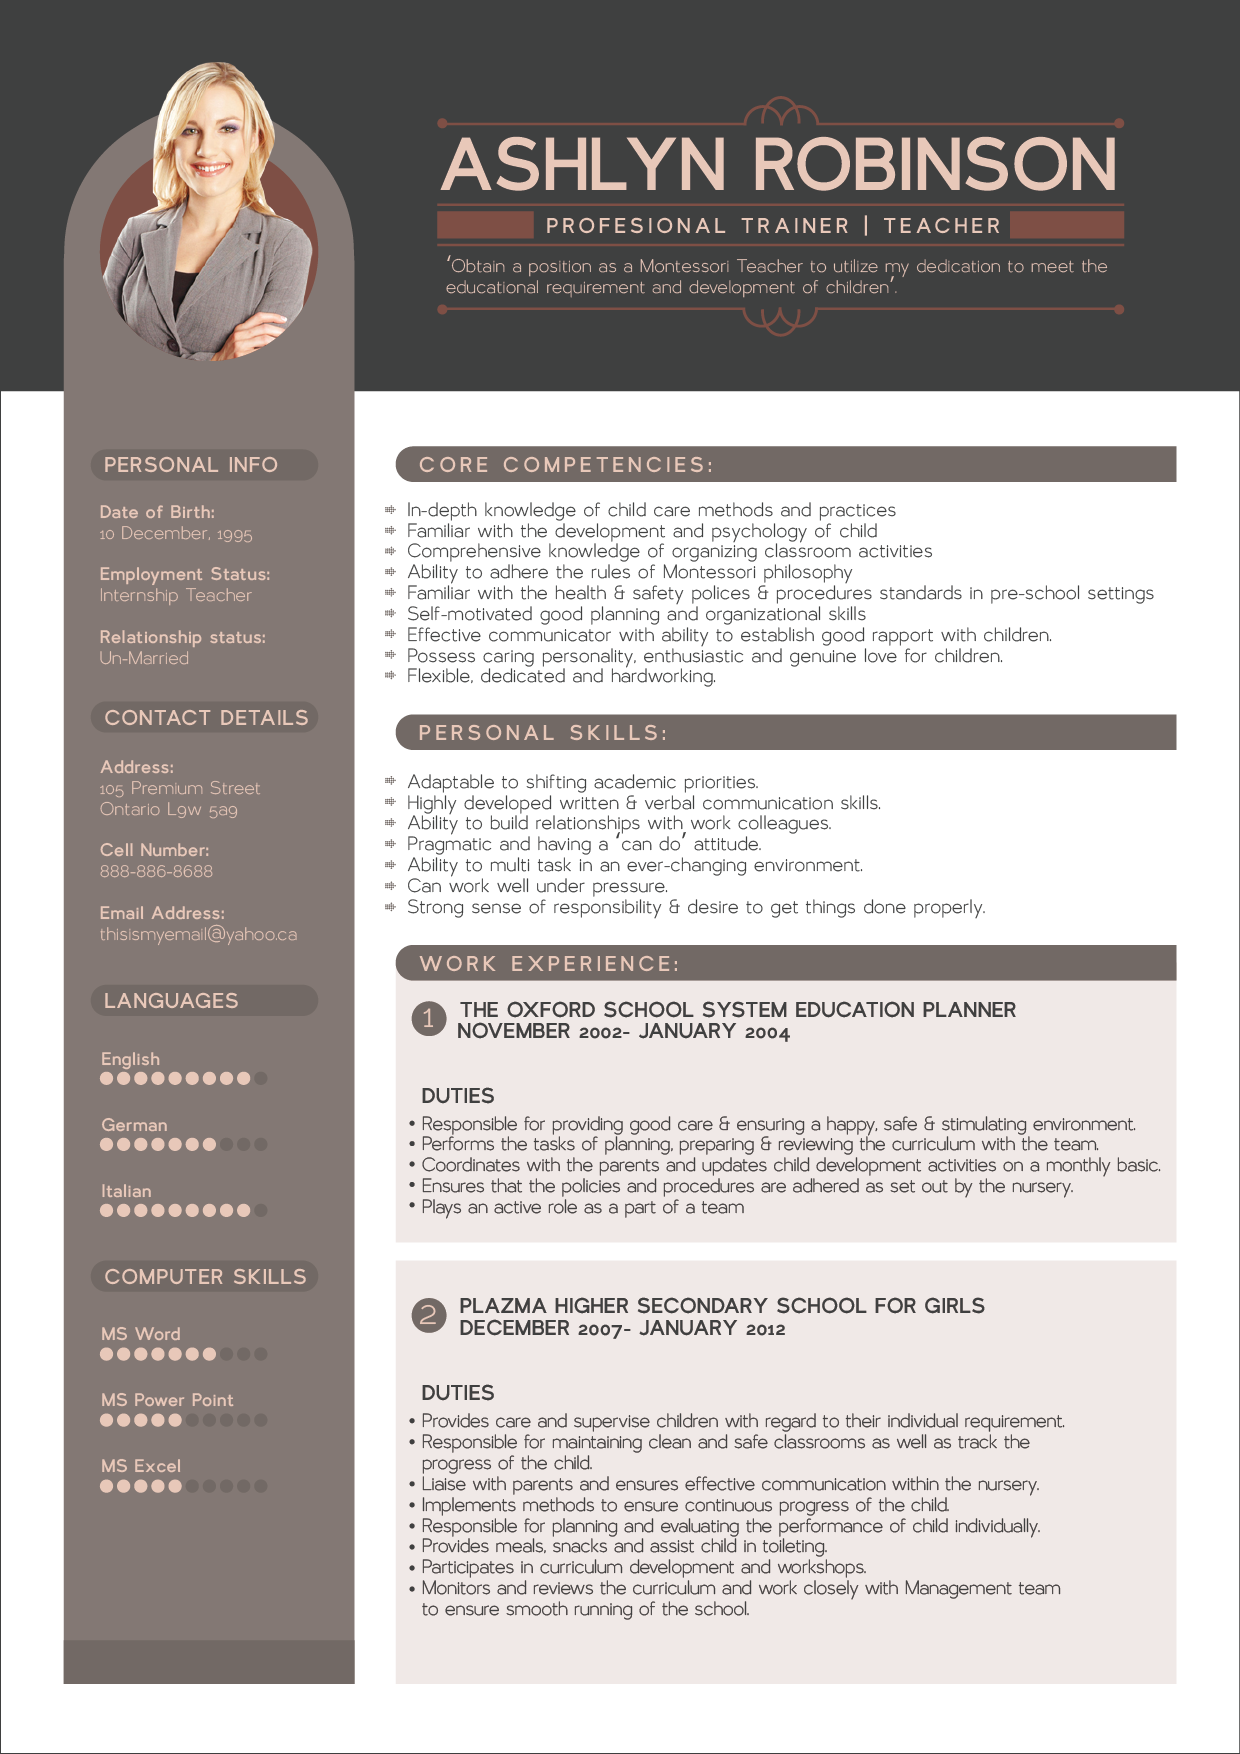 free resume  cv  design template for trainers  u0026 teachers